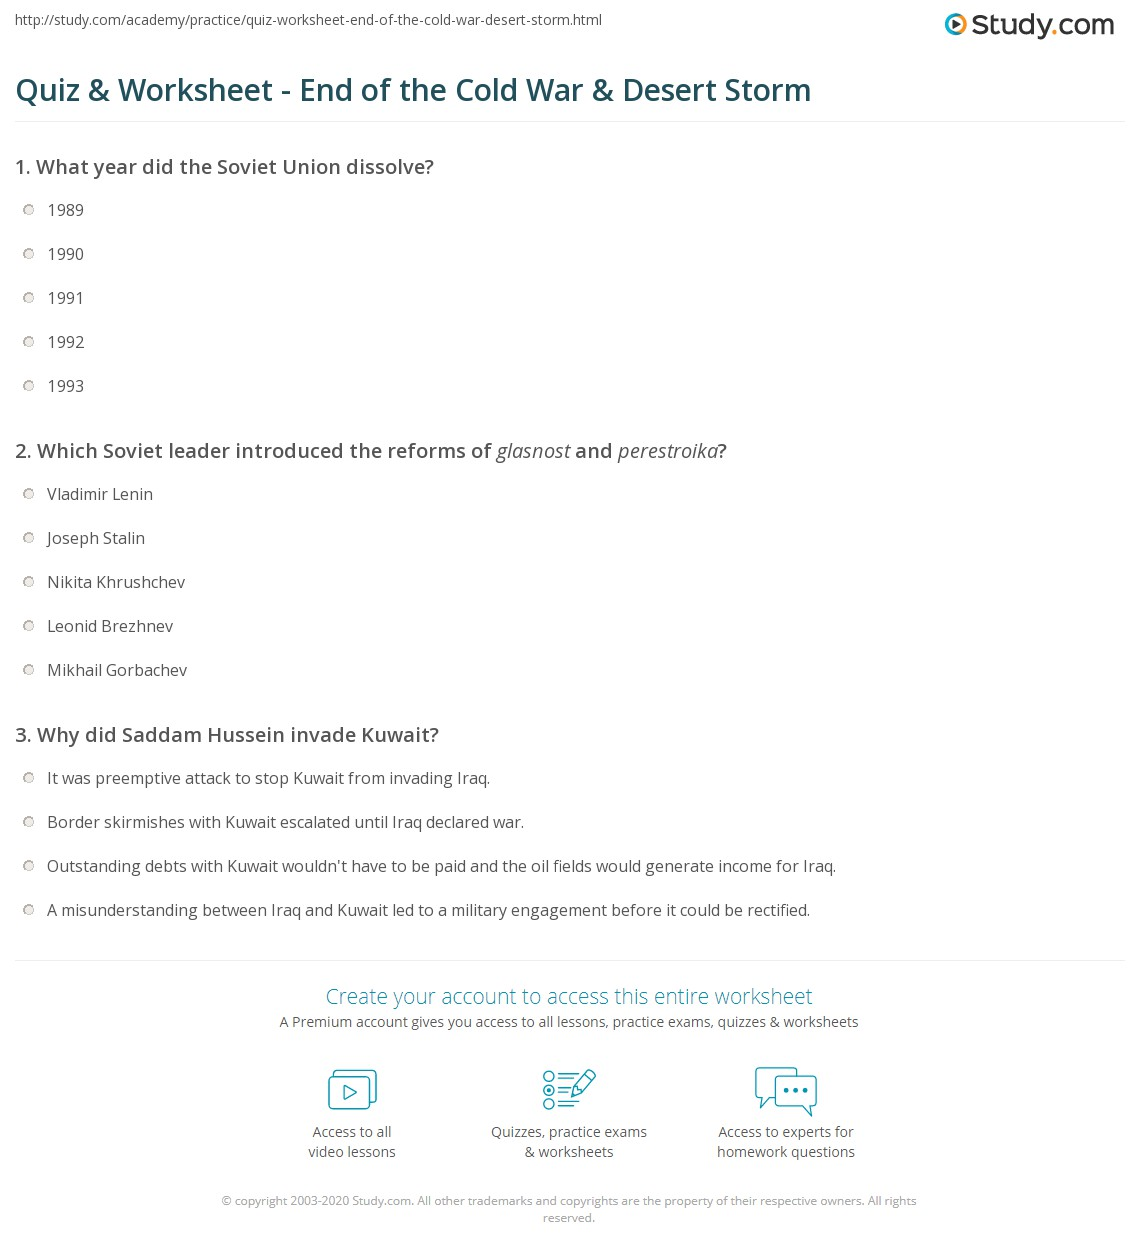 quiz worksheet end of the cold war desert storm com print the end of the cold war and desert storm worksheet